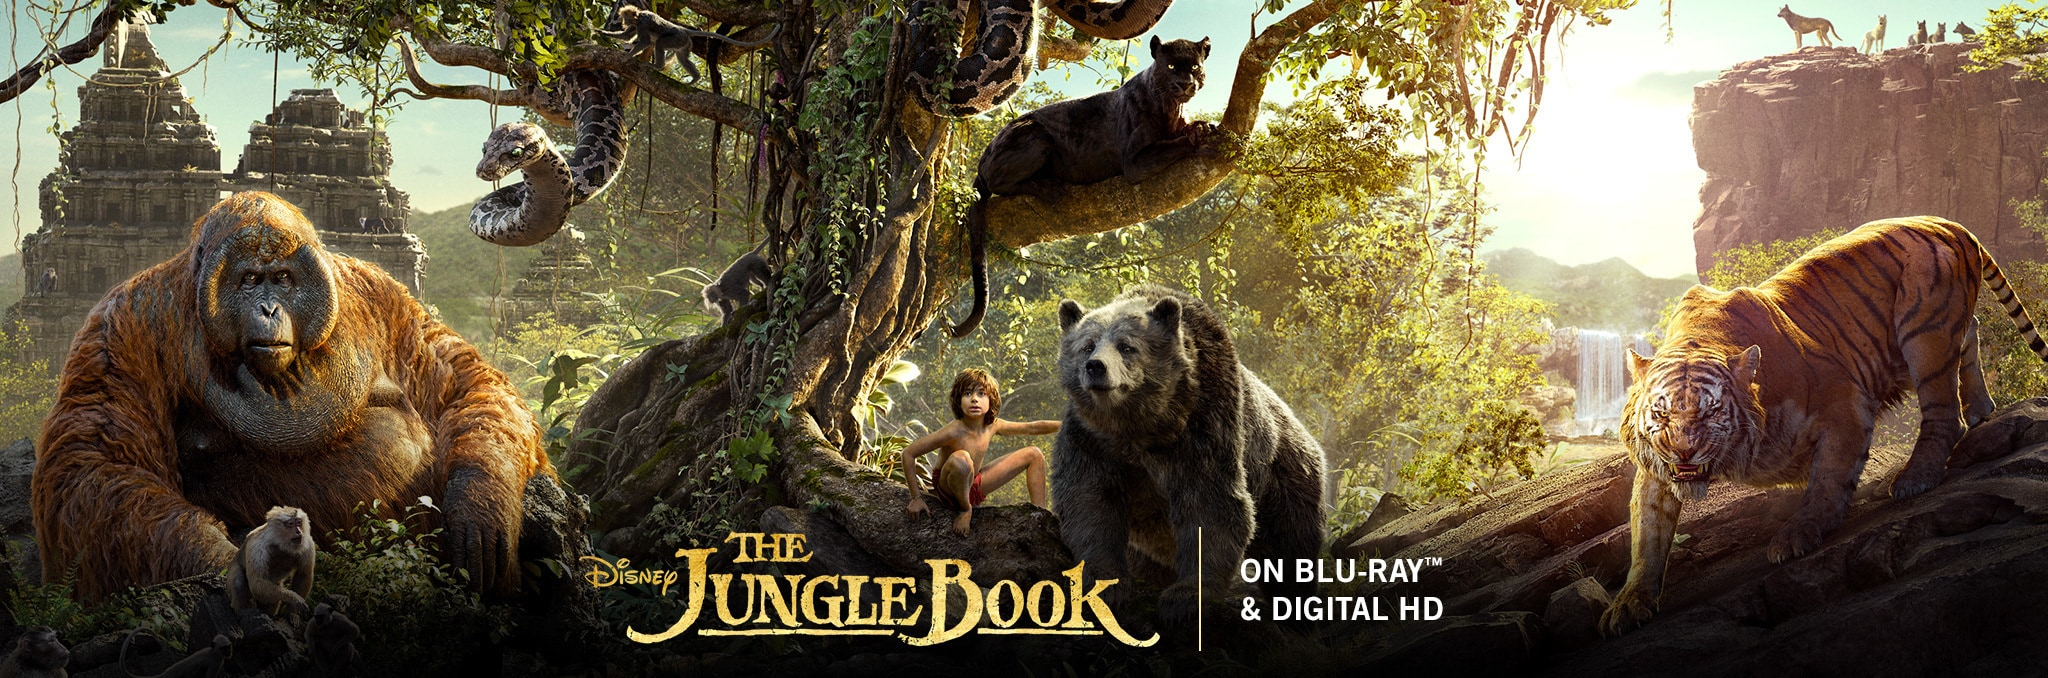 the jungle book full movie in hindi dvdrip